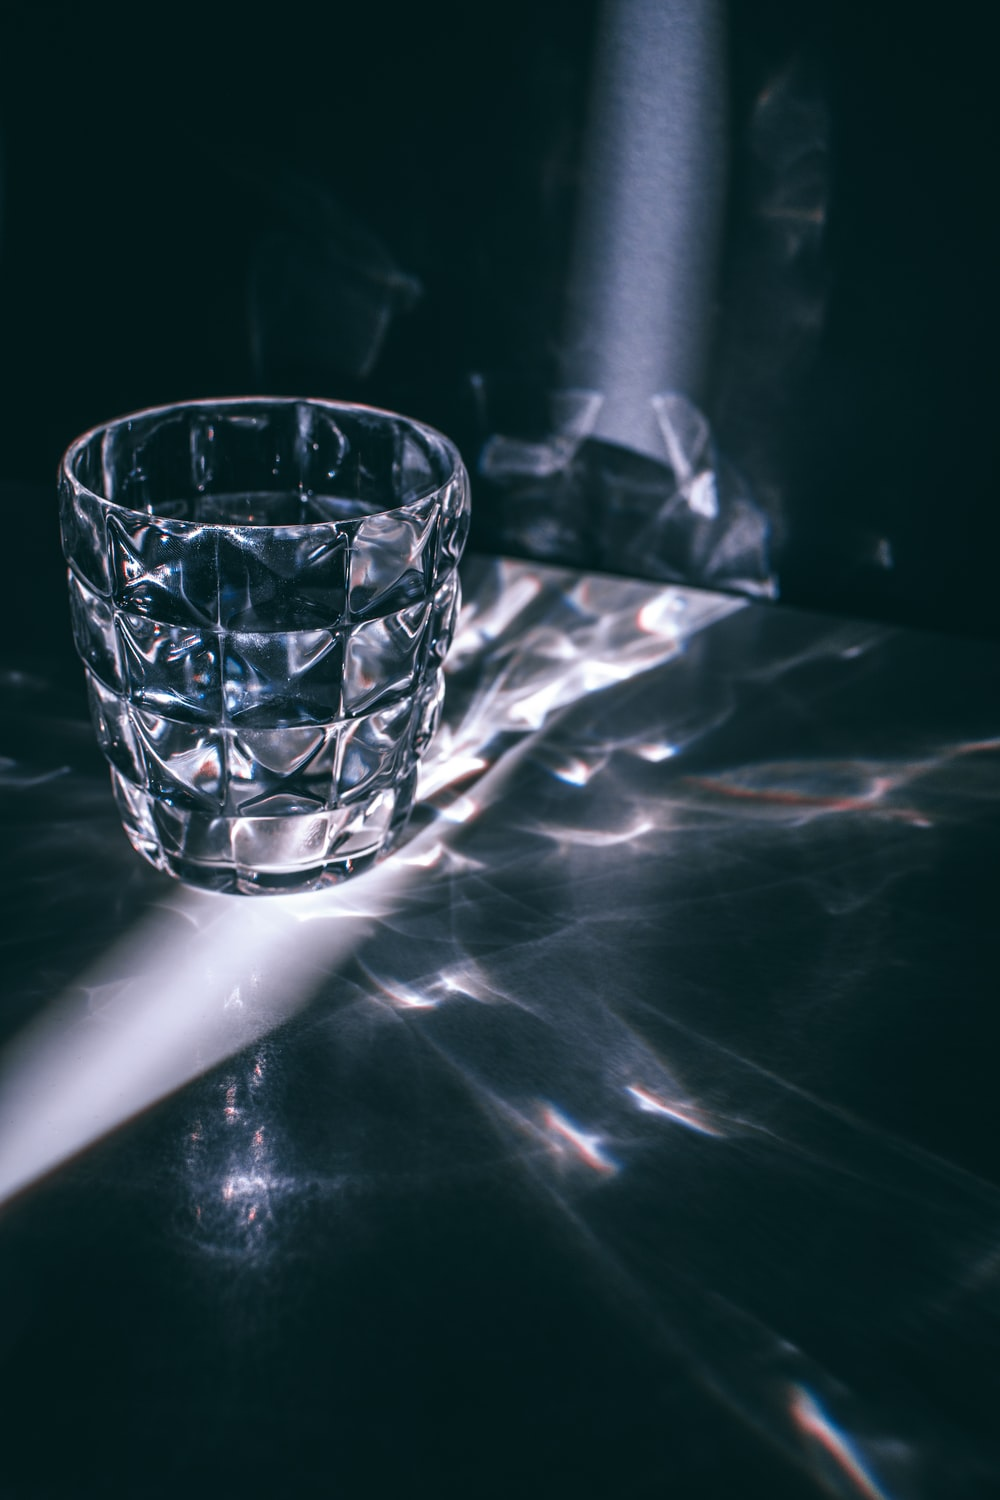 empty cup on white surface with light reflection